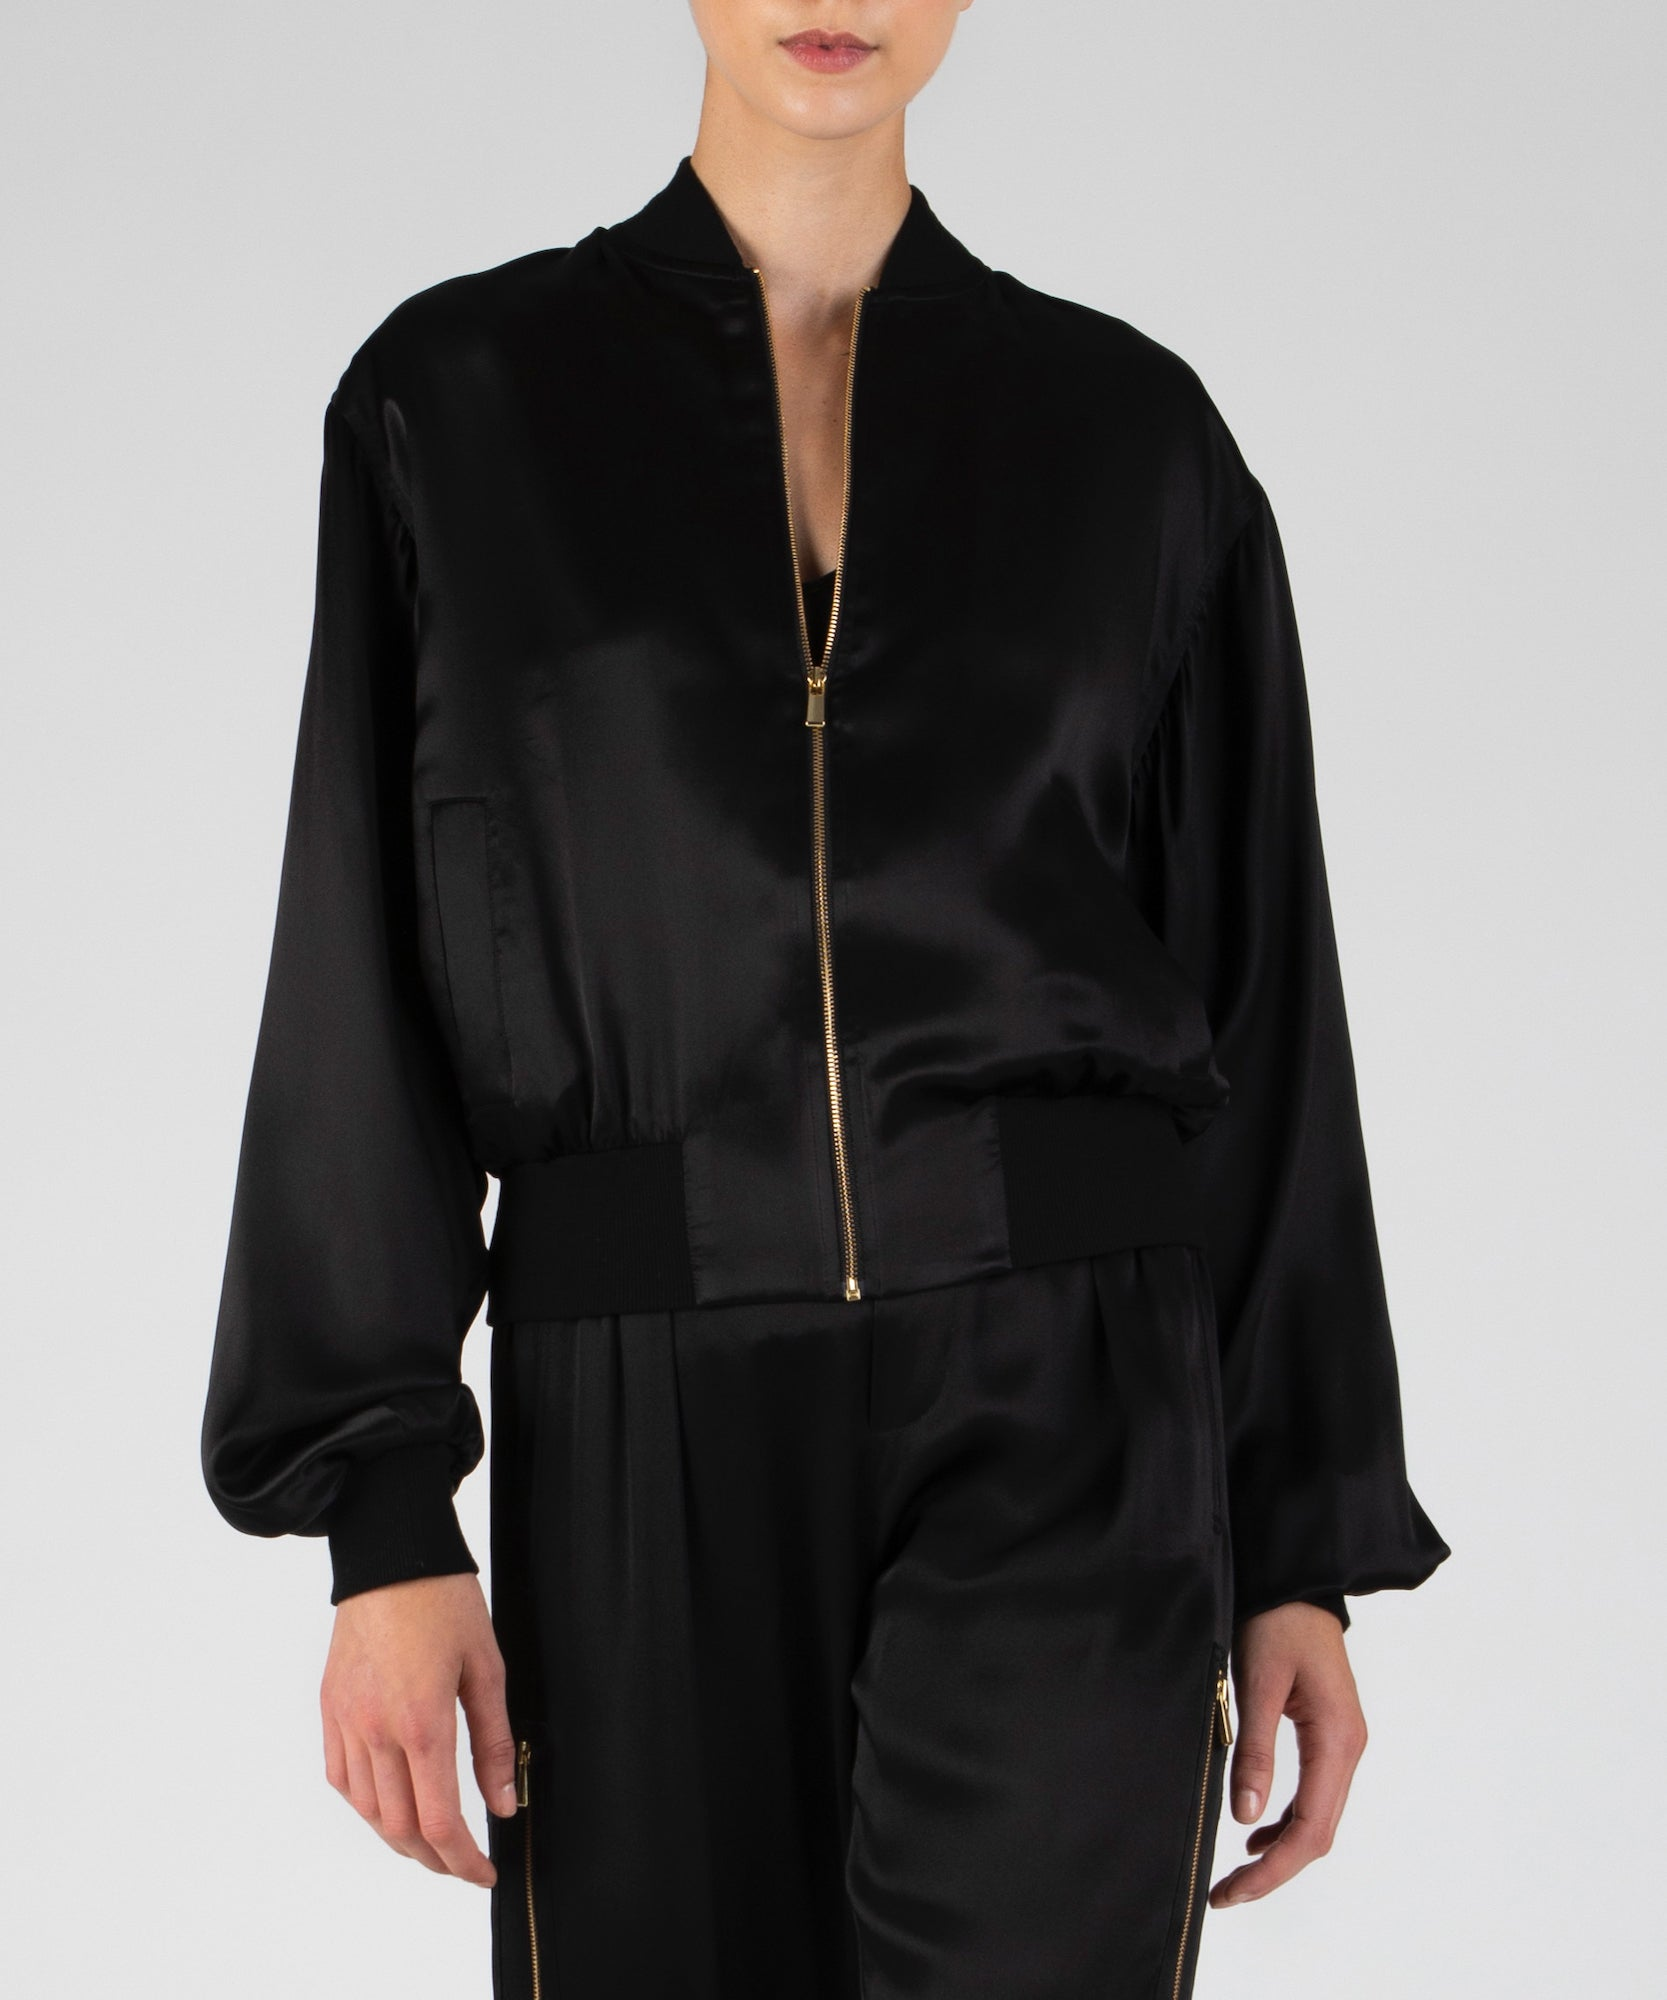 Black Silk Charmeuse Cargo Jacket - Women's Casual Jacket by ATM Anthony Thomas Melillo